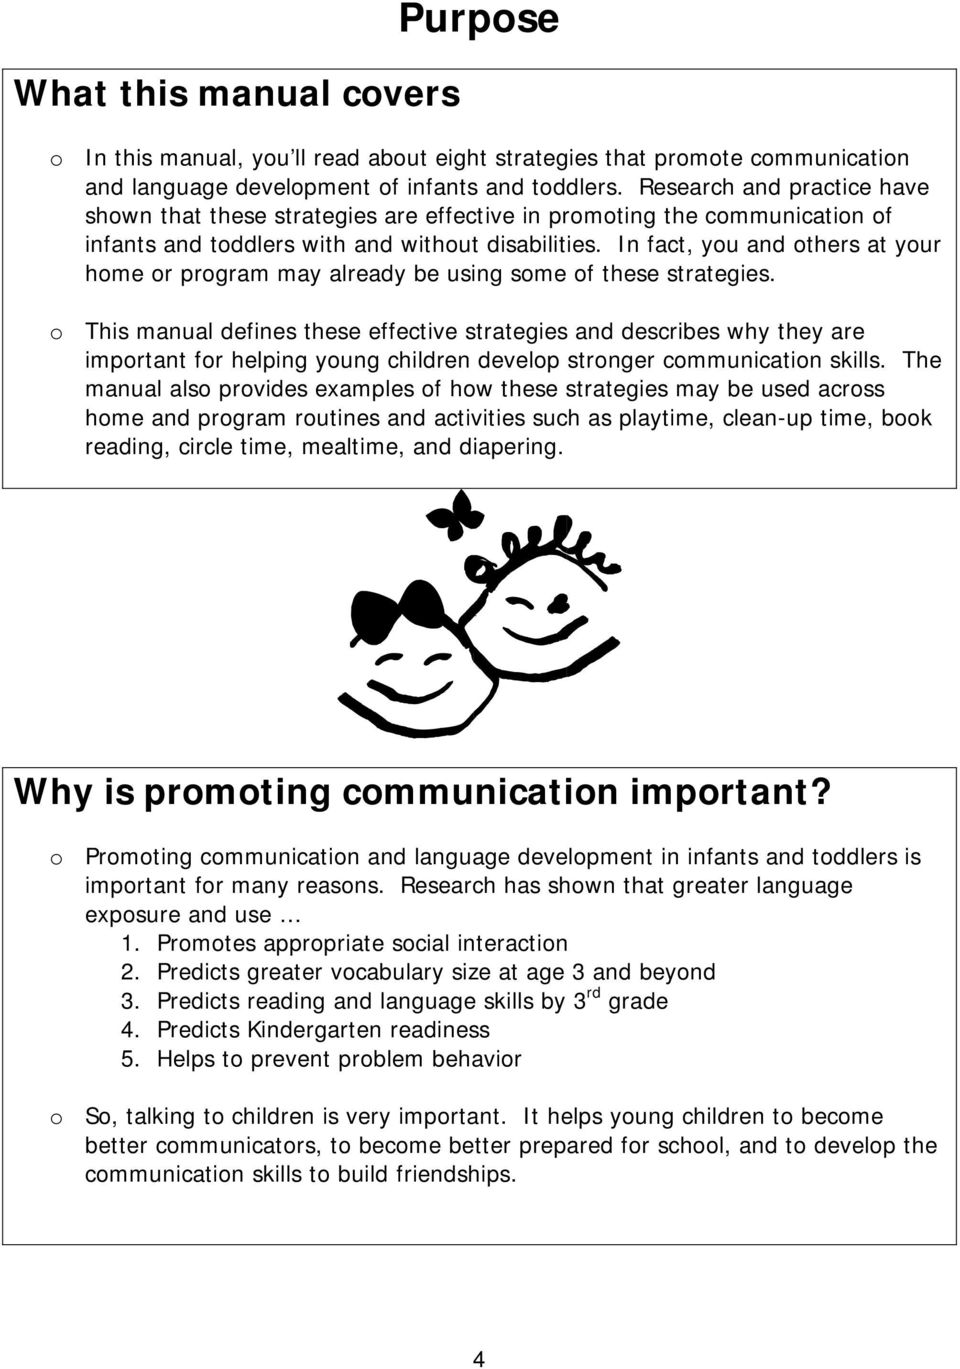 Language At 3 Predicts 3rd Grade >> Strategies For Promoting Communication And Language Of Infants And